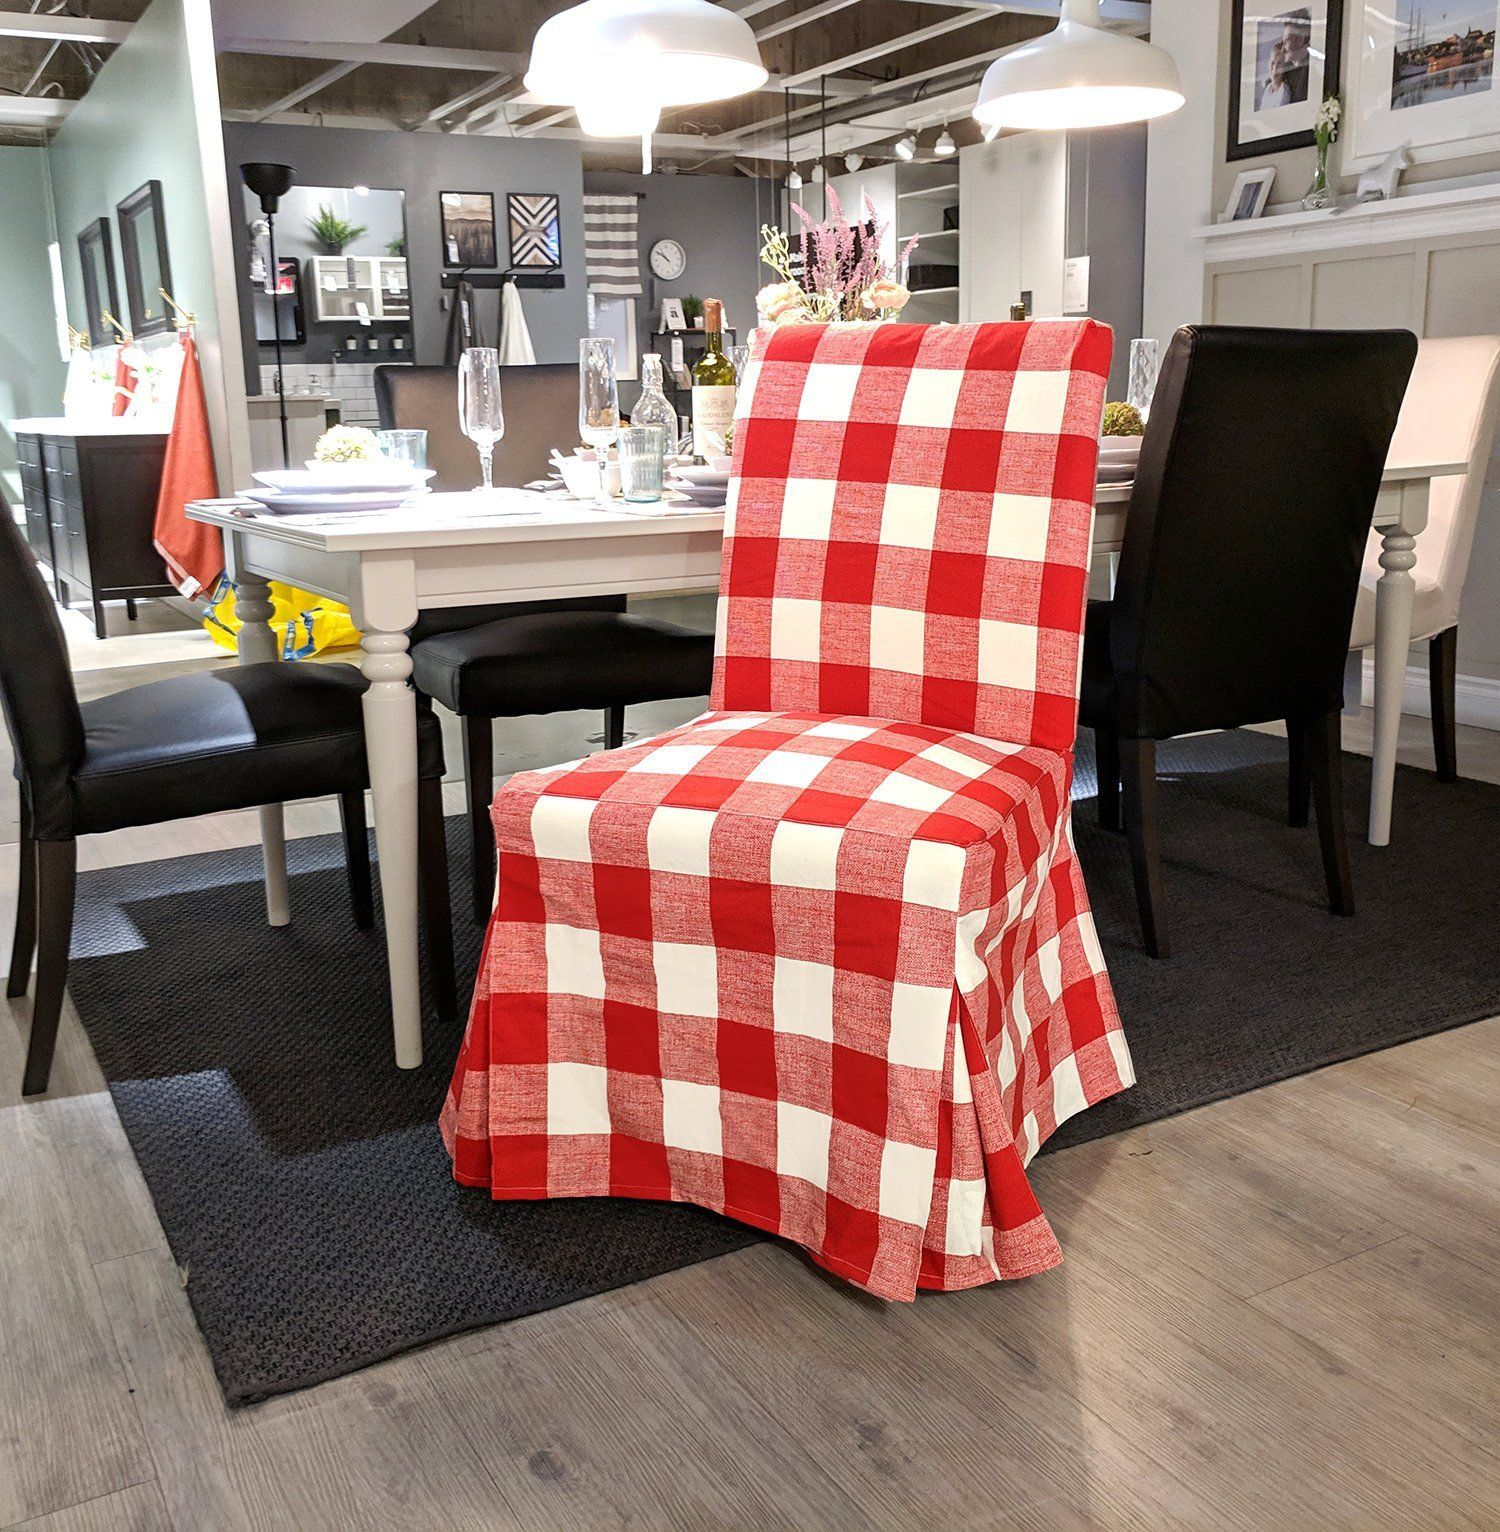 IKEA HENRIKSDAL Dining Chair Cover, Red Buffalo Check